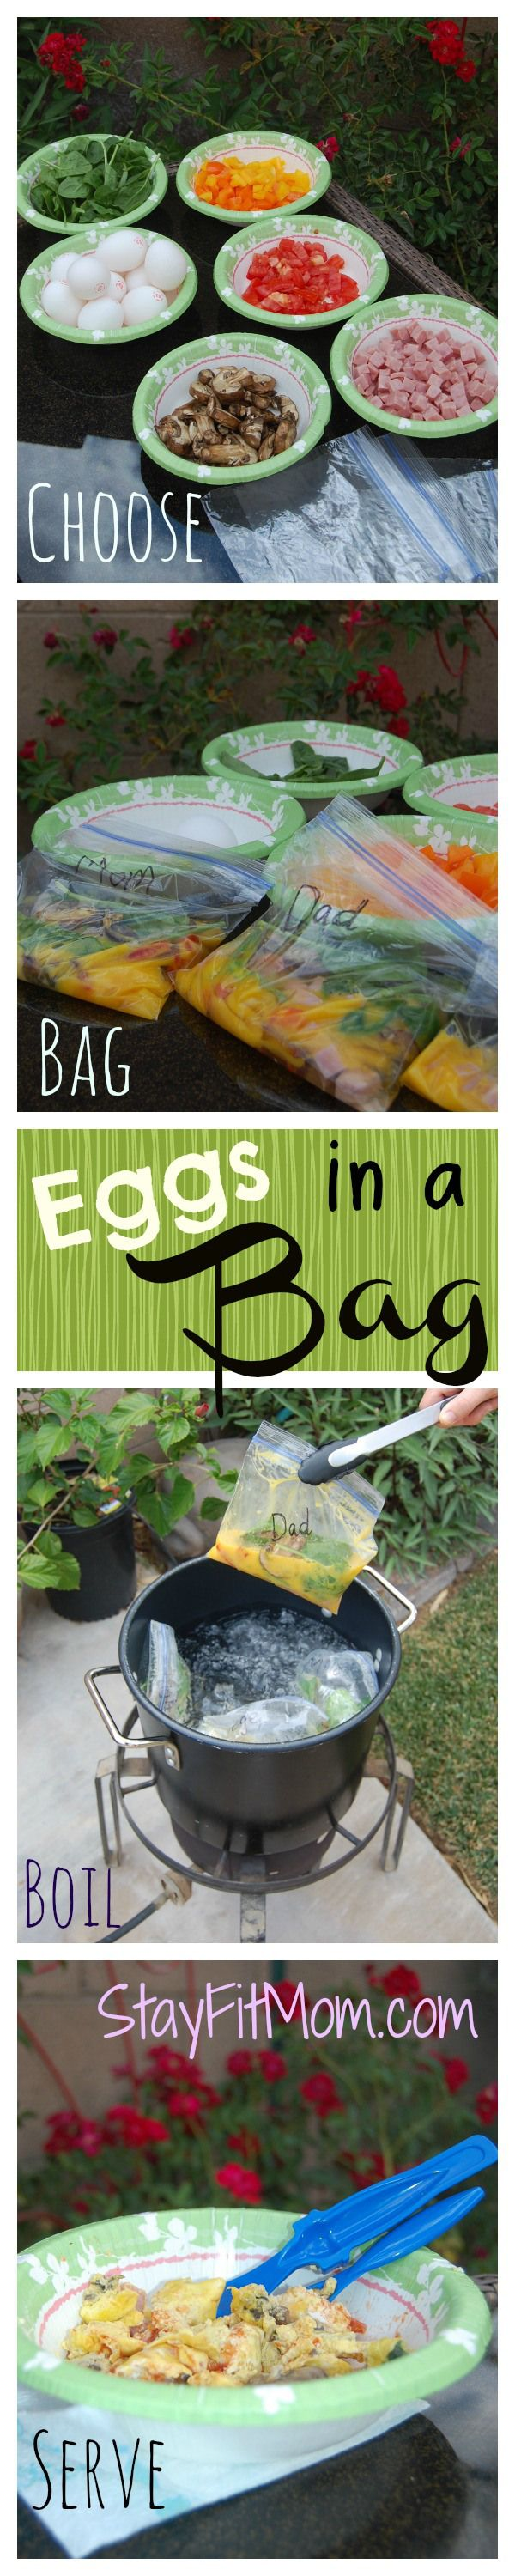 Best 25+ Camping bags ideas on Pinterest